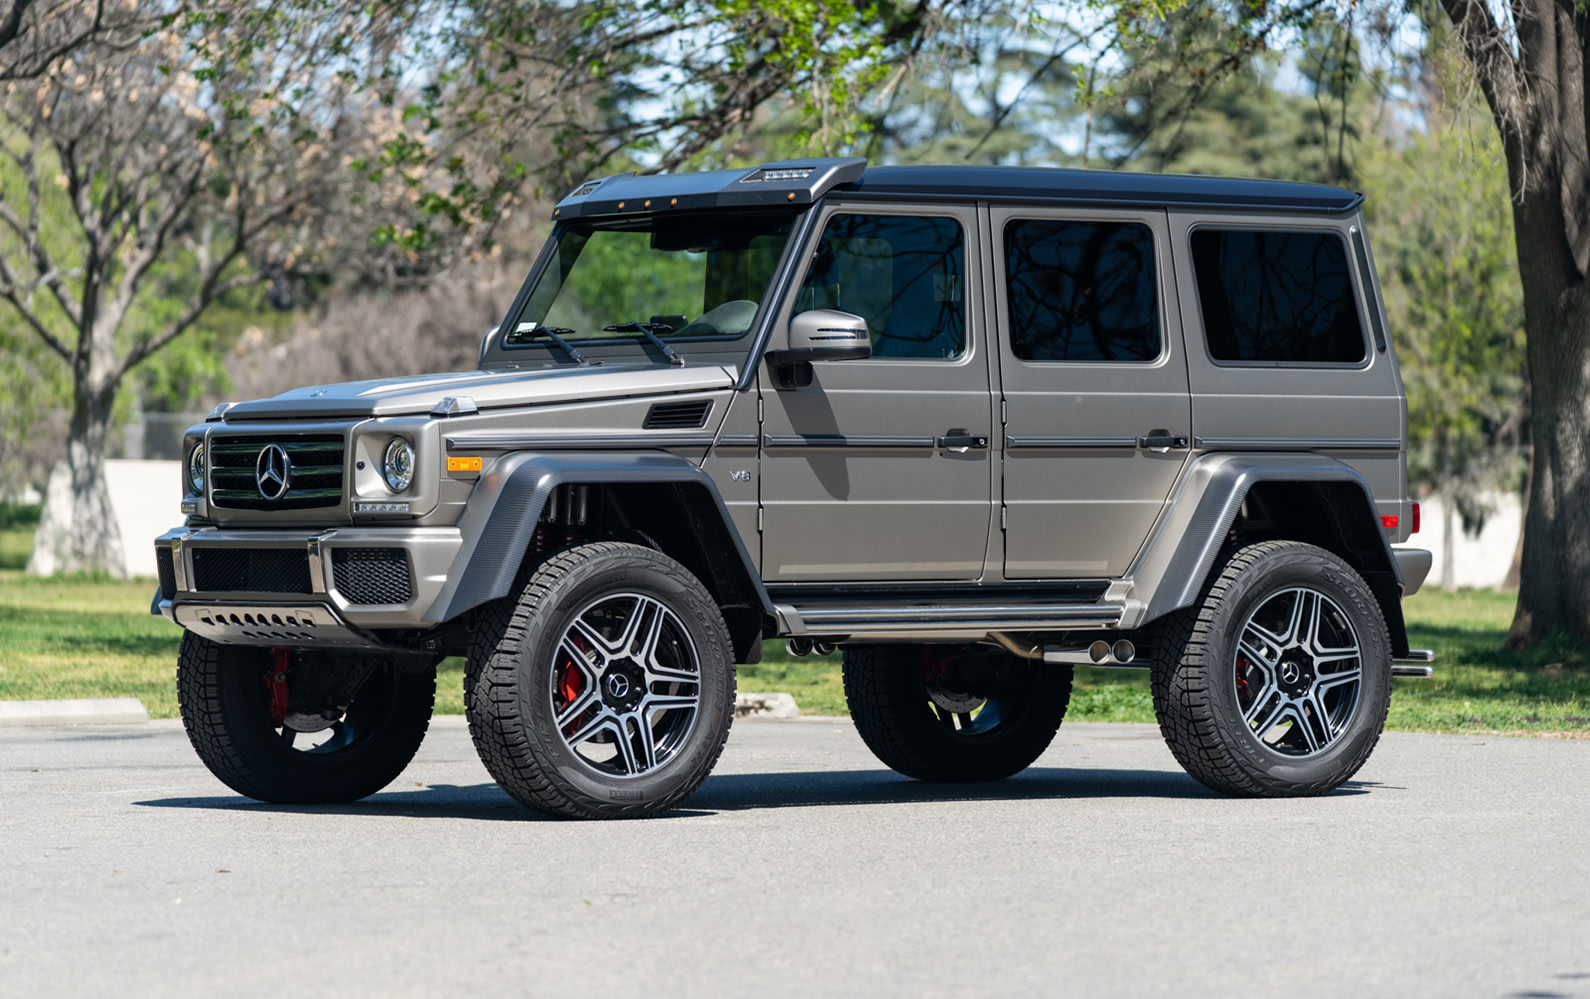 Prod/O21F - May 2021/1461_2017 Mercedes-Benz G550 4x4 Squared/2017_Mercedes-Benz_G550_4x4_Squared_2_j4whid